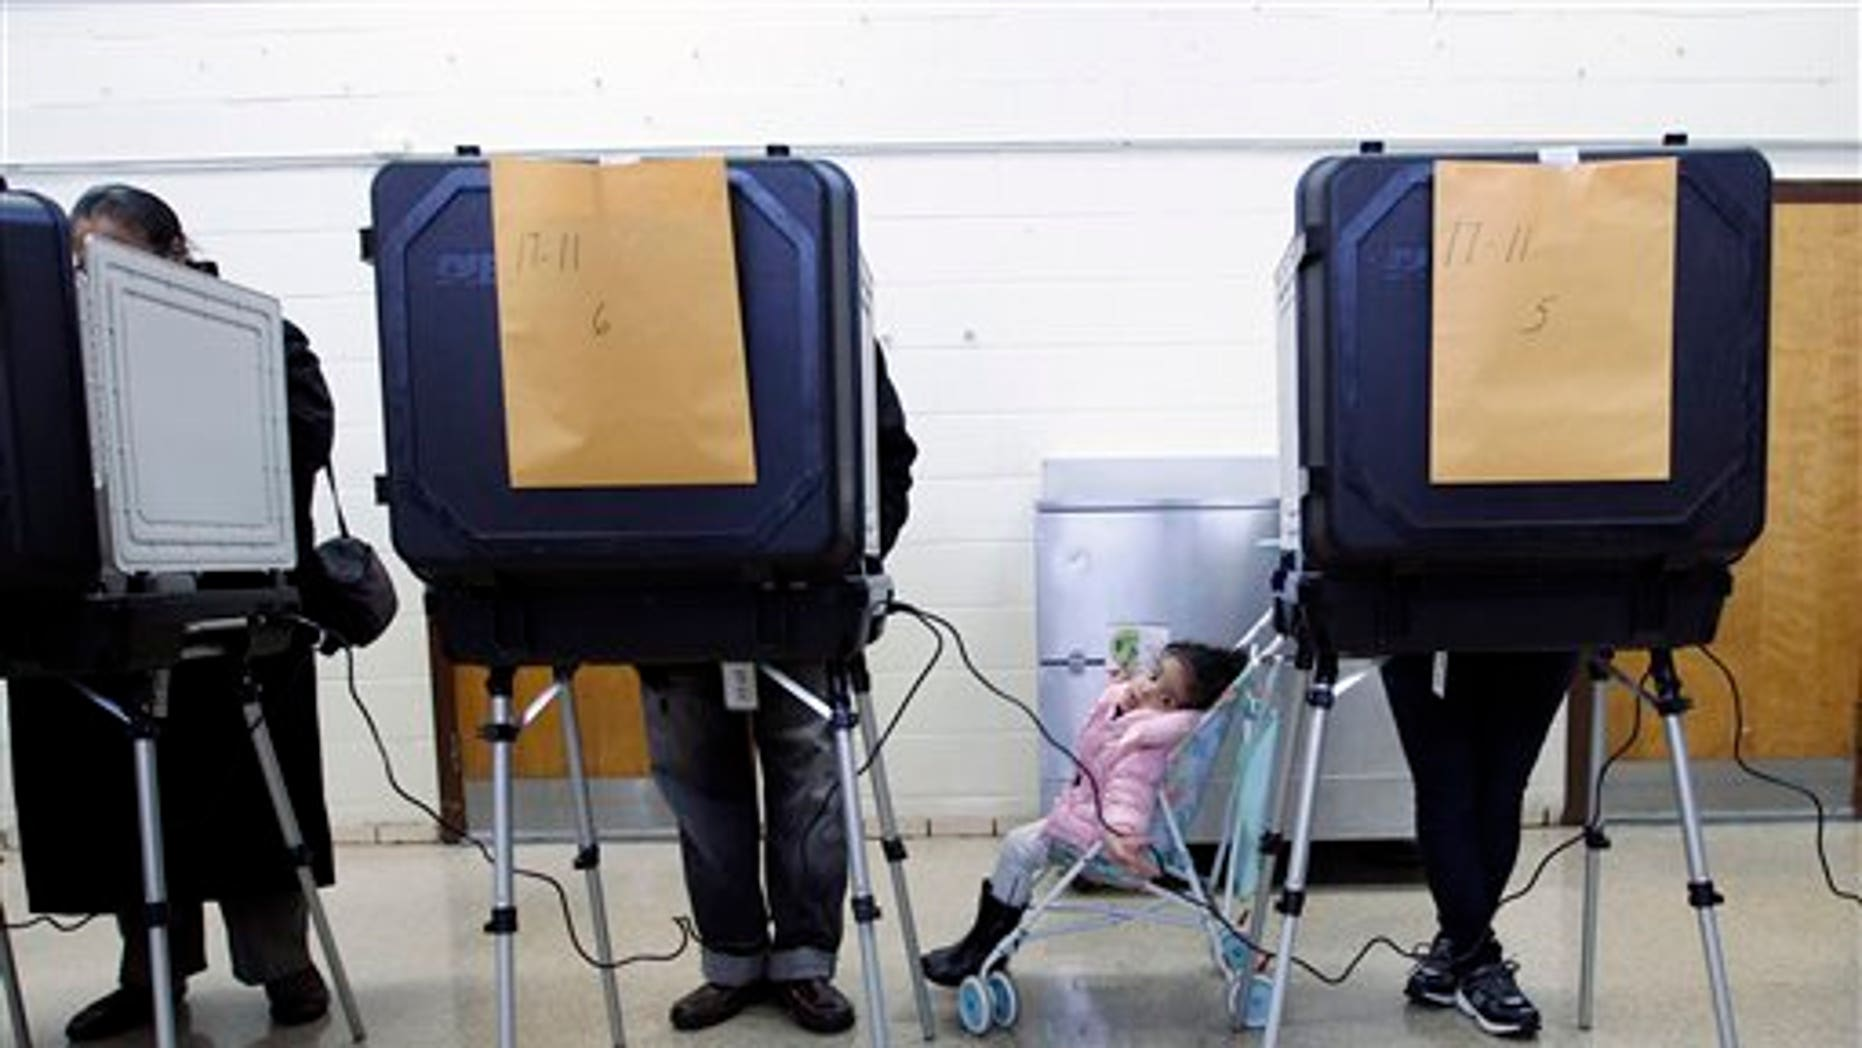 Two-year-old Sharlene Blount waits for her mother Lidia to vote at Ridgecrest Elementary, in Hyattsville, Md. on Tuesday, Nov. 6, 2012. (AP Photo/Jose Luis Magana)